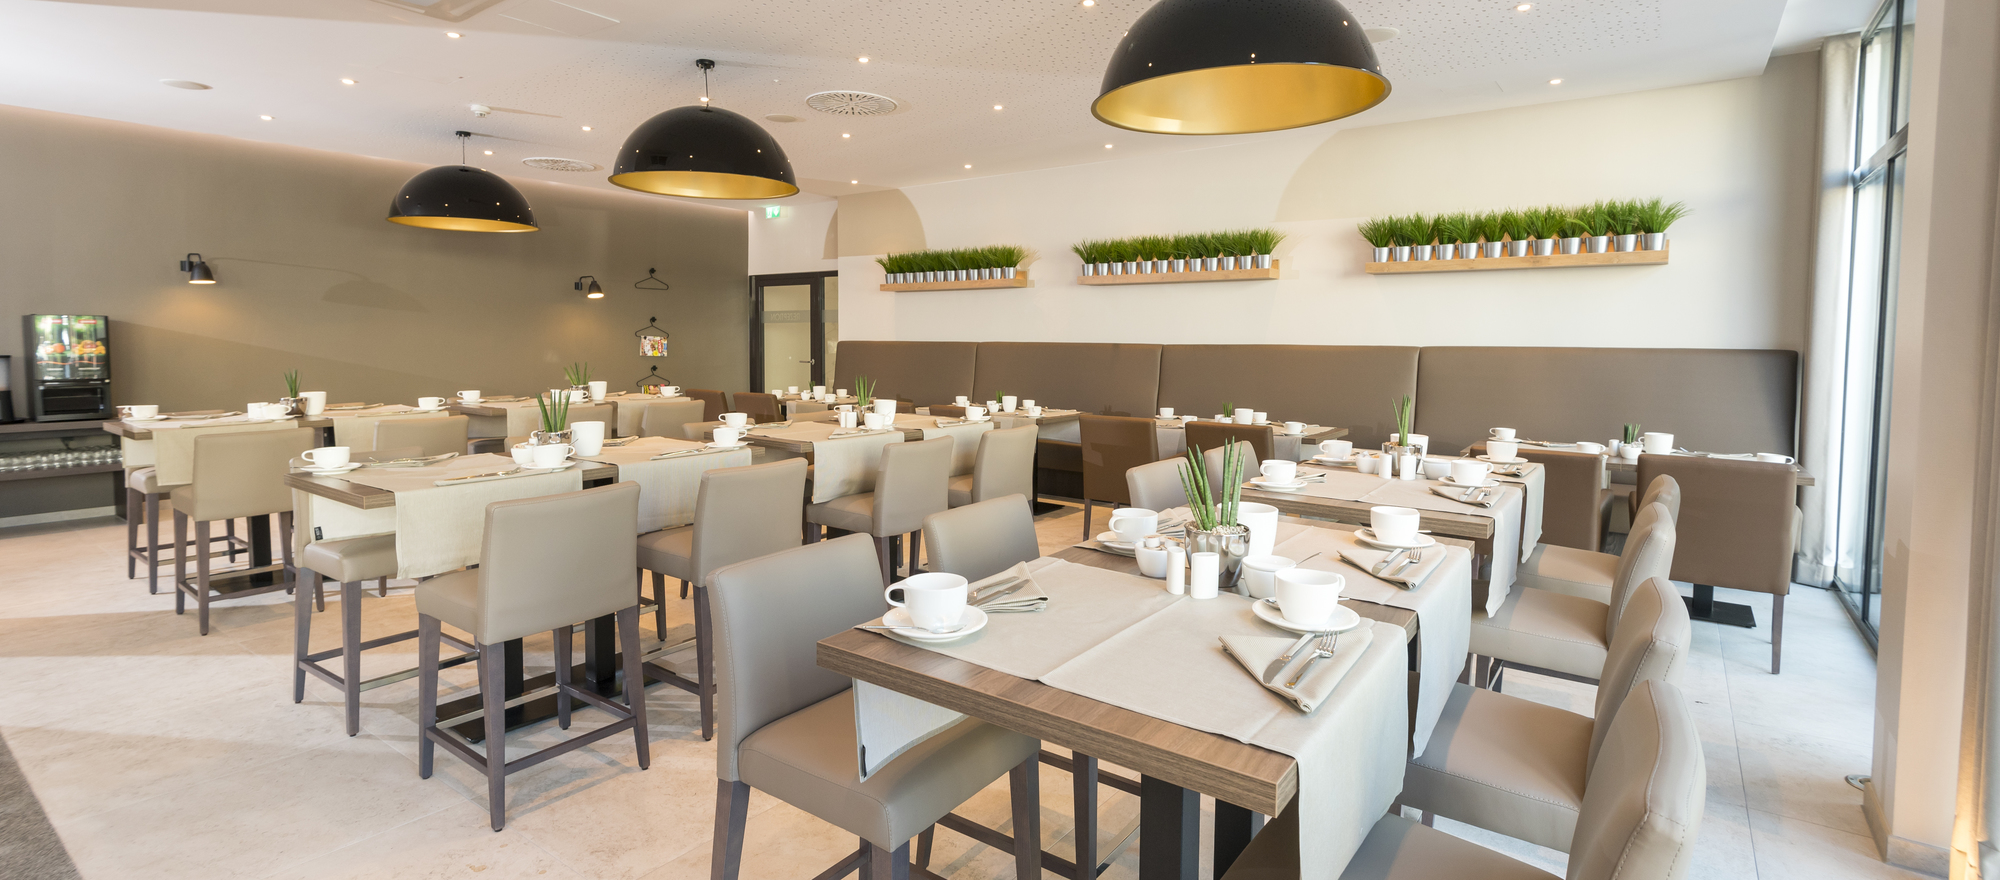 Stylish bistro in the Ringhotel Looken Inn in Lingen, 4-stars hotel in the Emsland